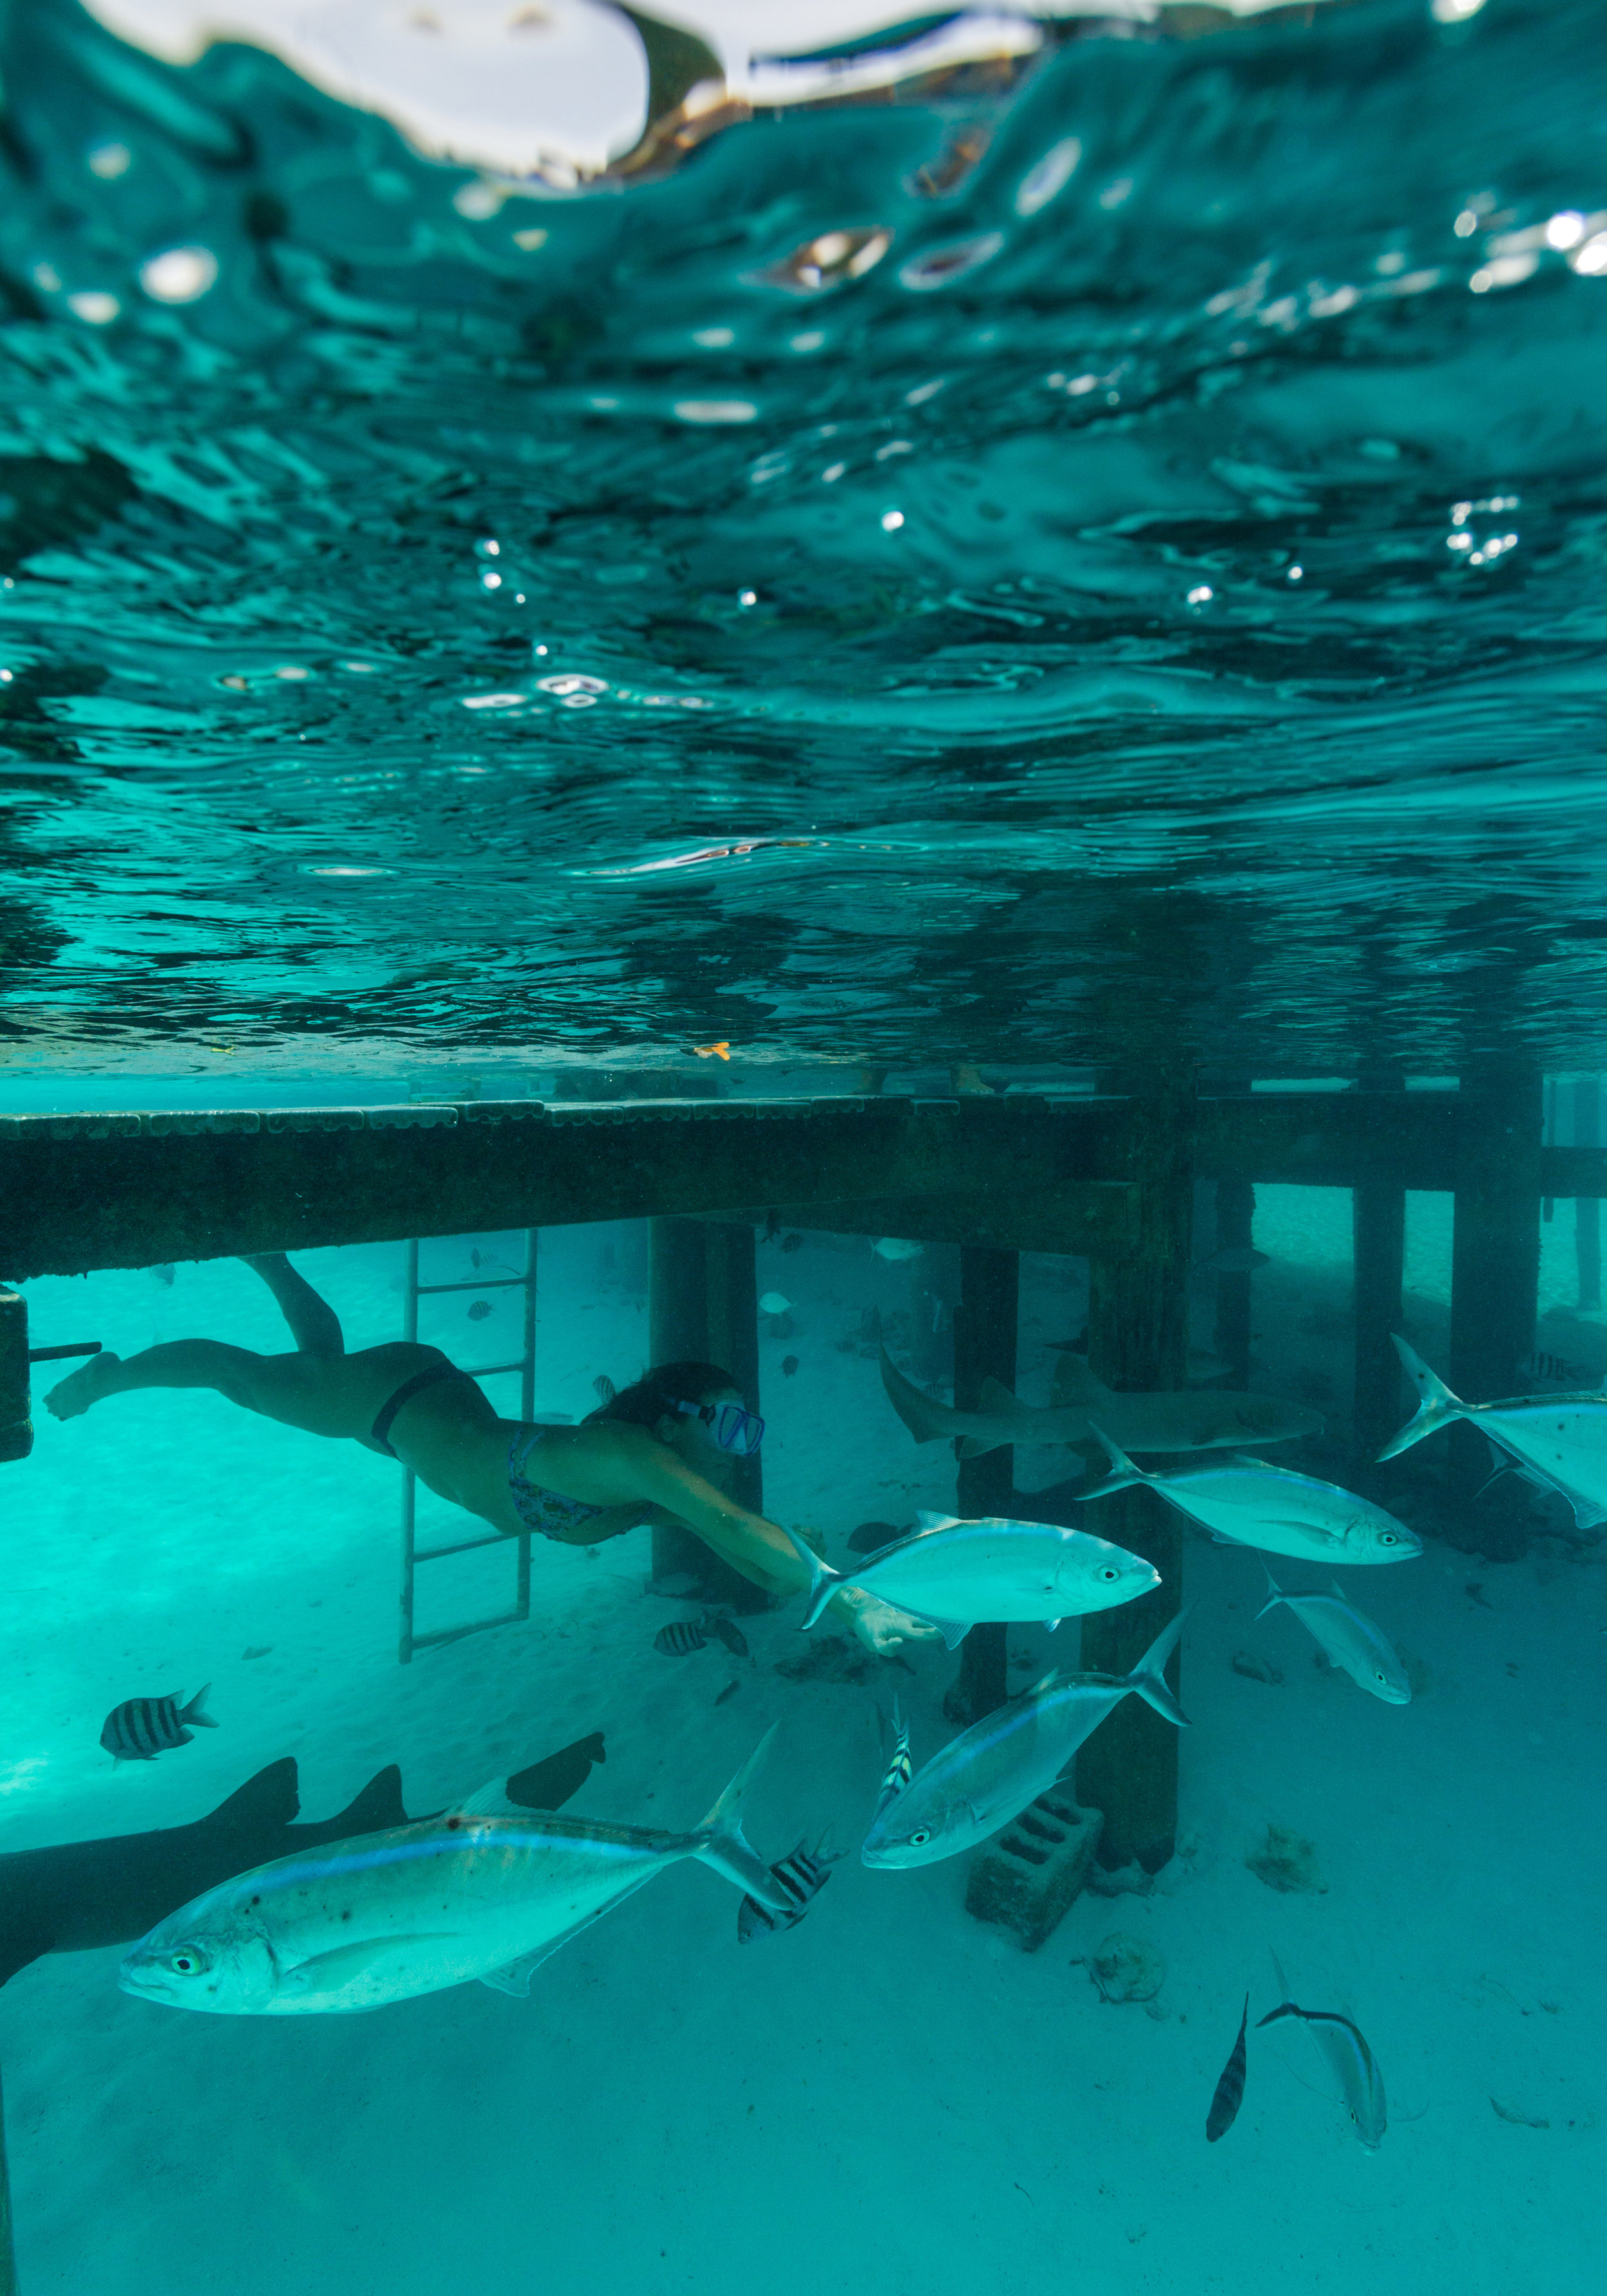 Fun times await in the Exumas swimming with the gentle nurse sharks